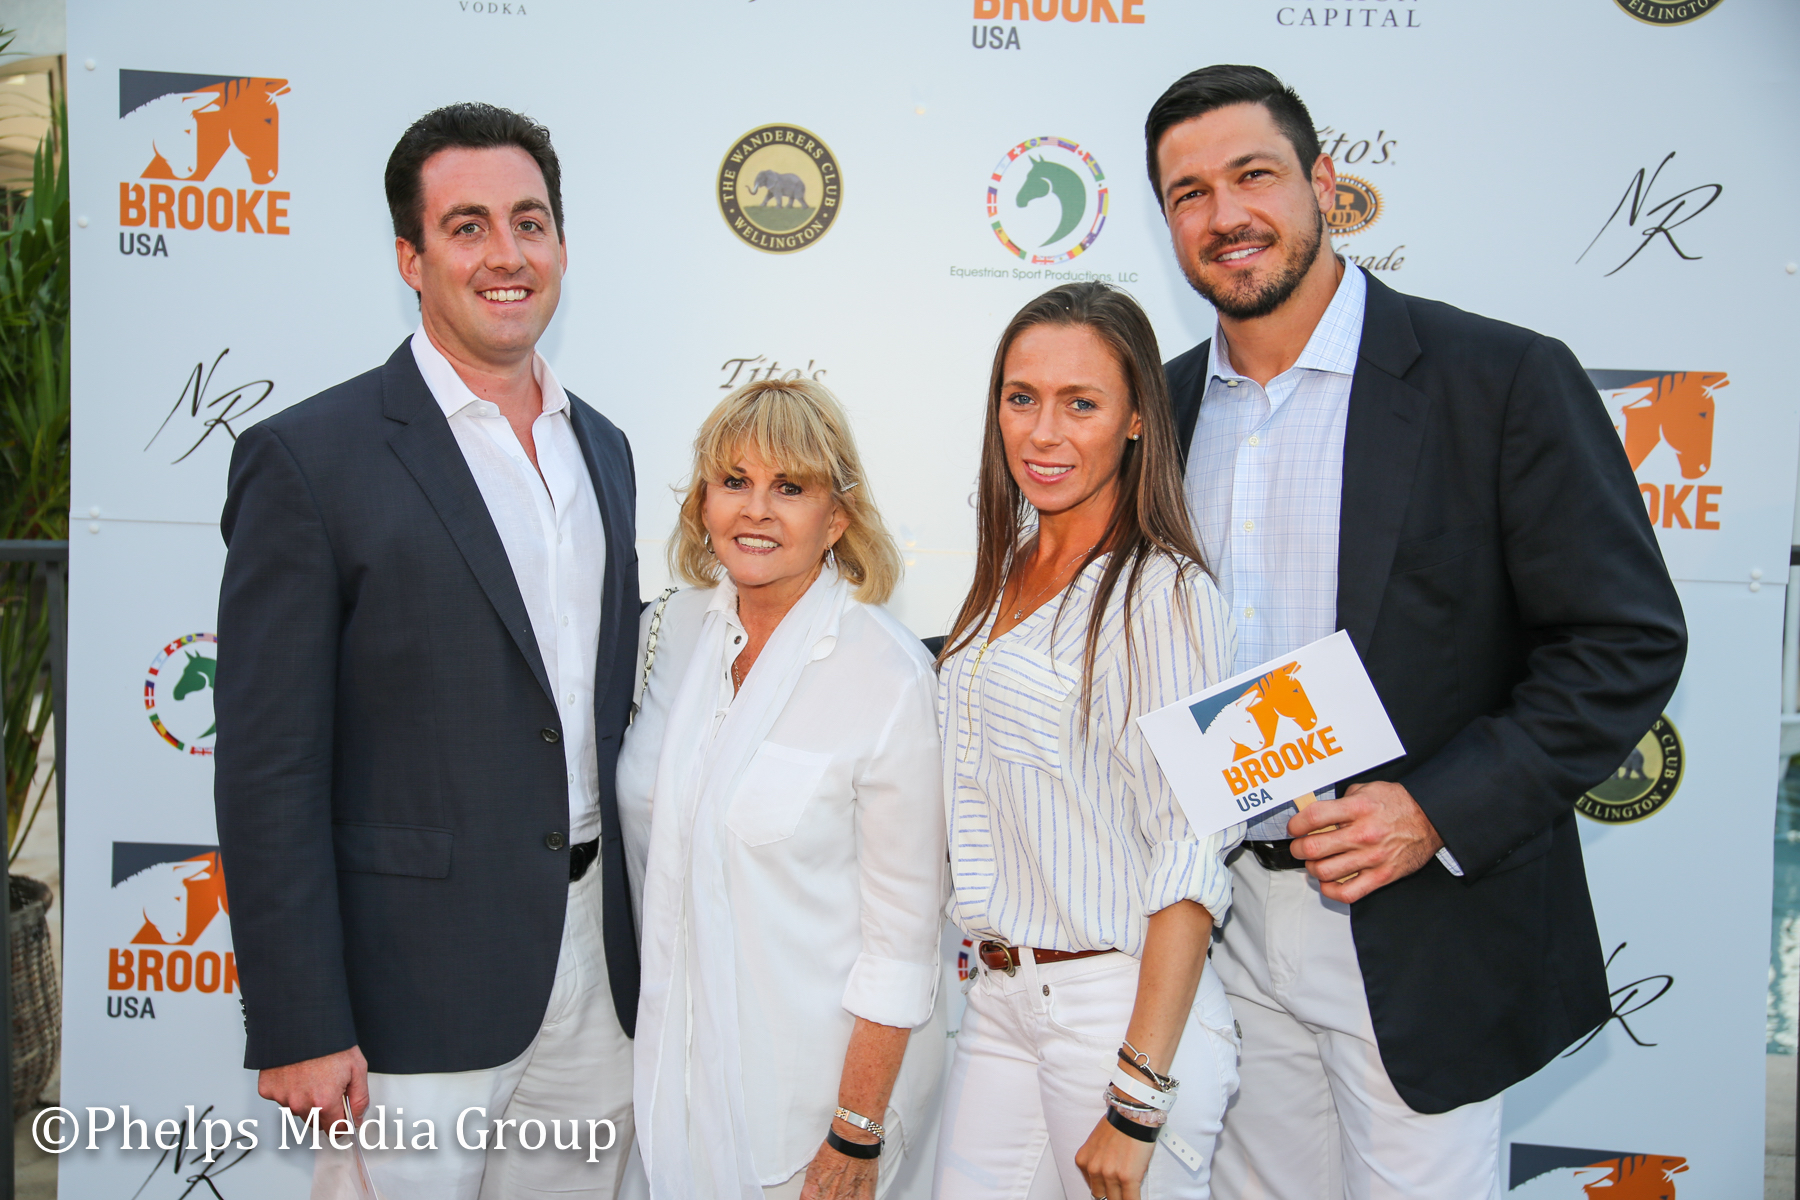 Jeanie Burton and Friends; Nic Roldan's 2nd Annual Sunset Polo & White Party, FL, by Phelps Media.jpg